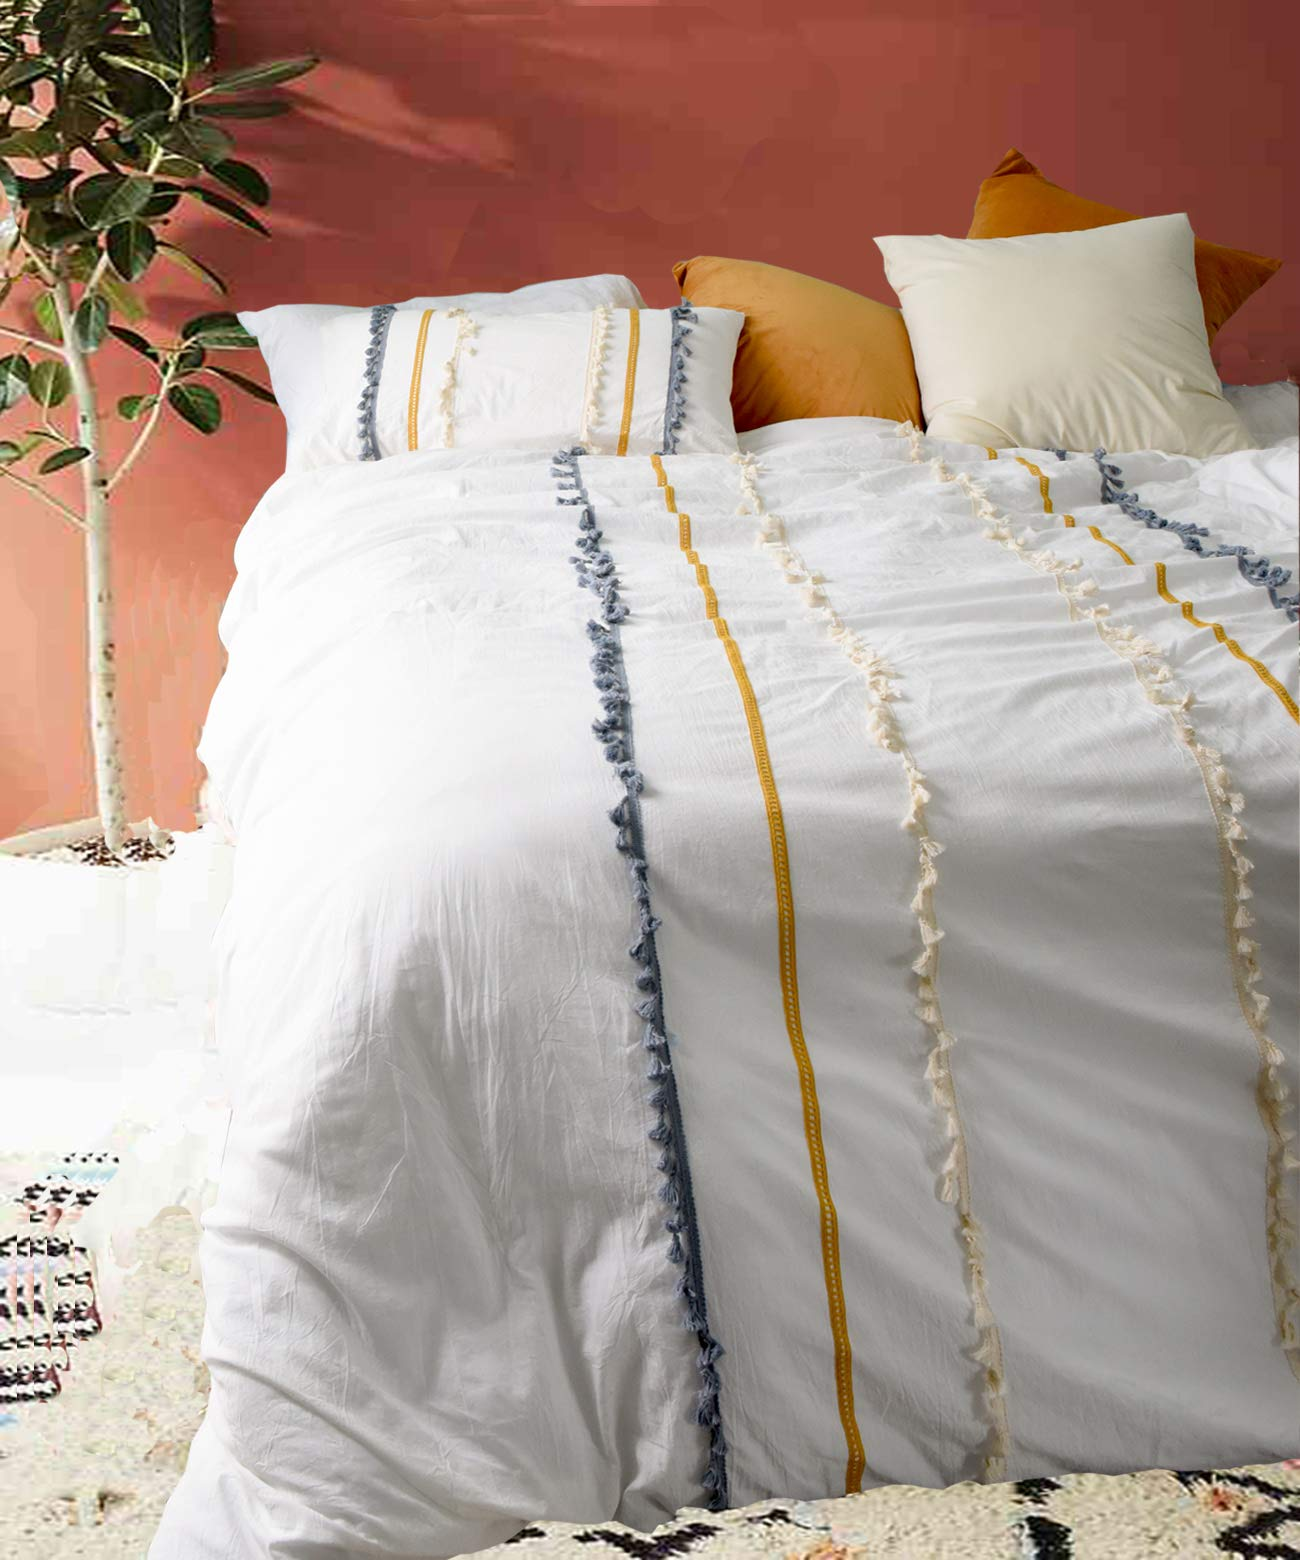 Flber Boho Duvet Cover Queen Cotton Boho Bedding Full White Comforter,86in x 90in